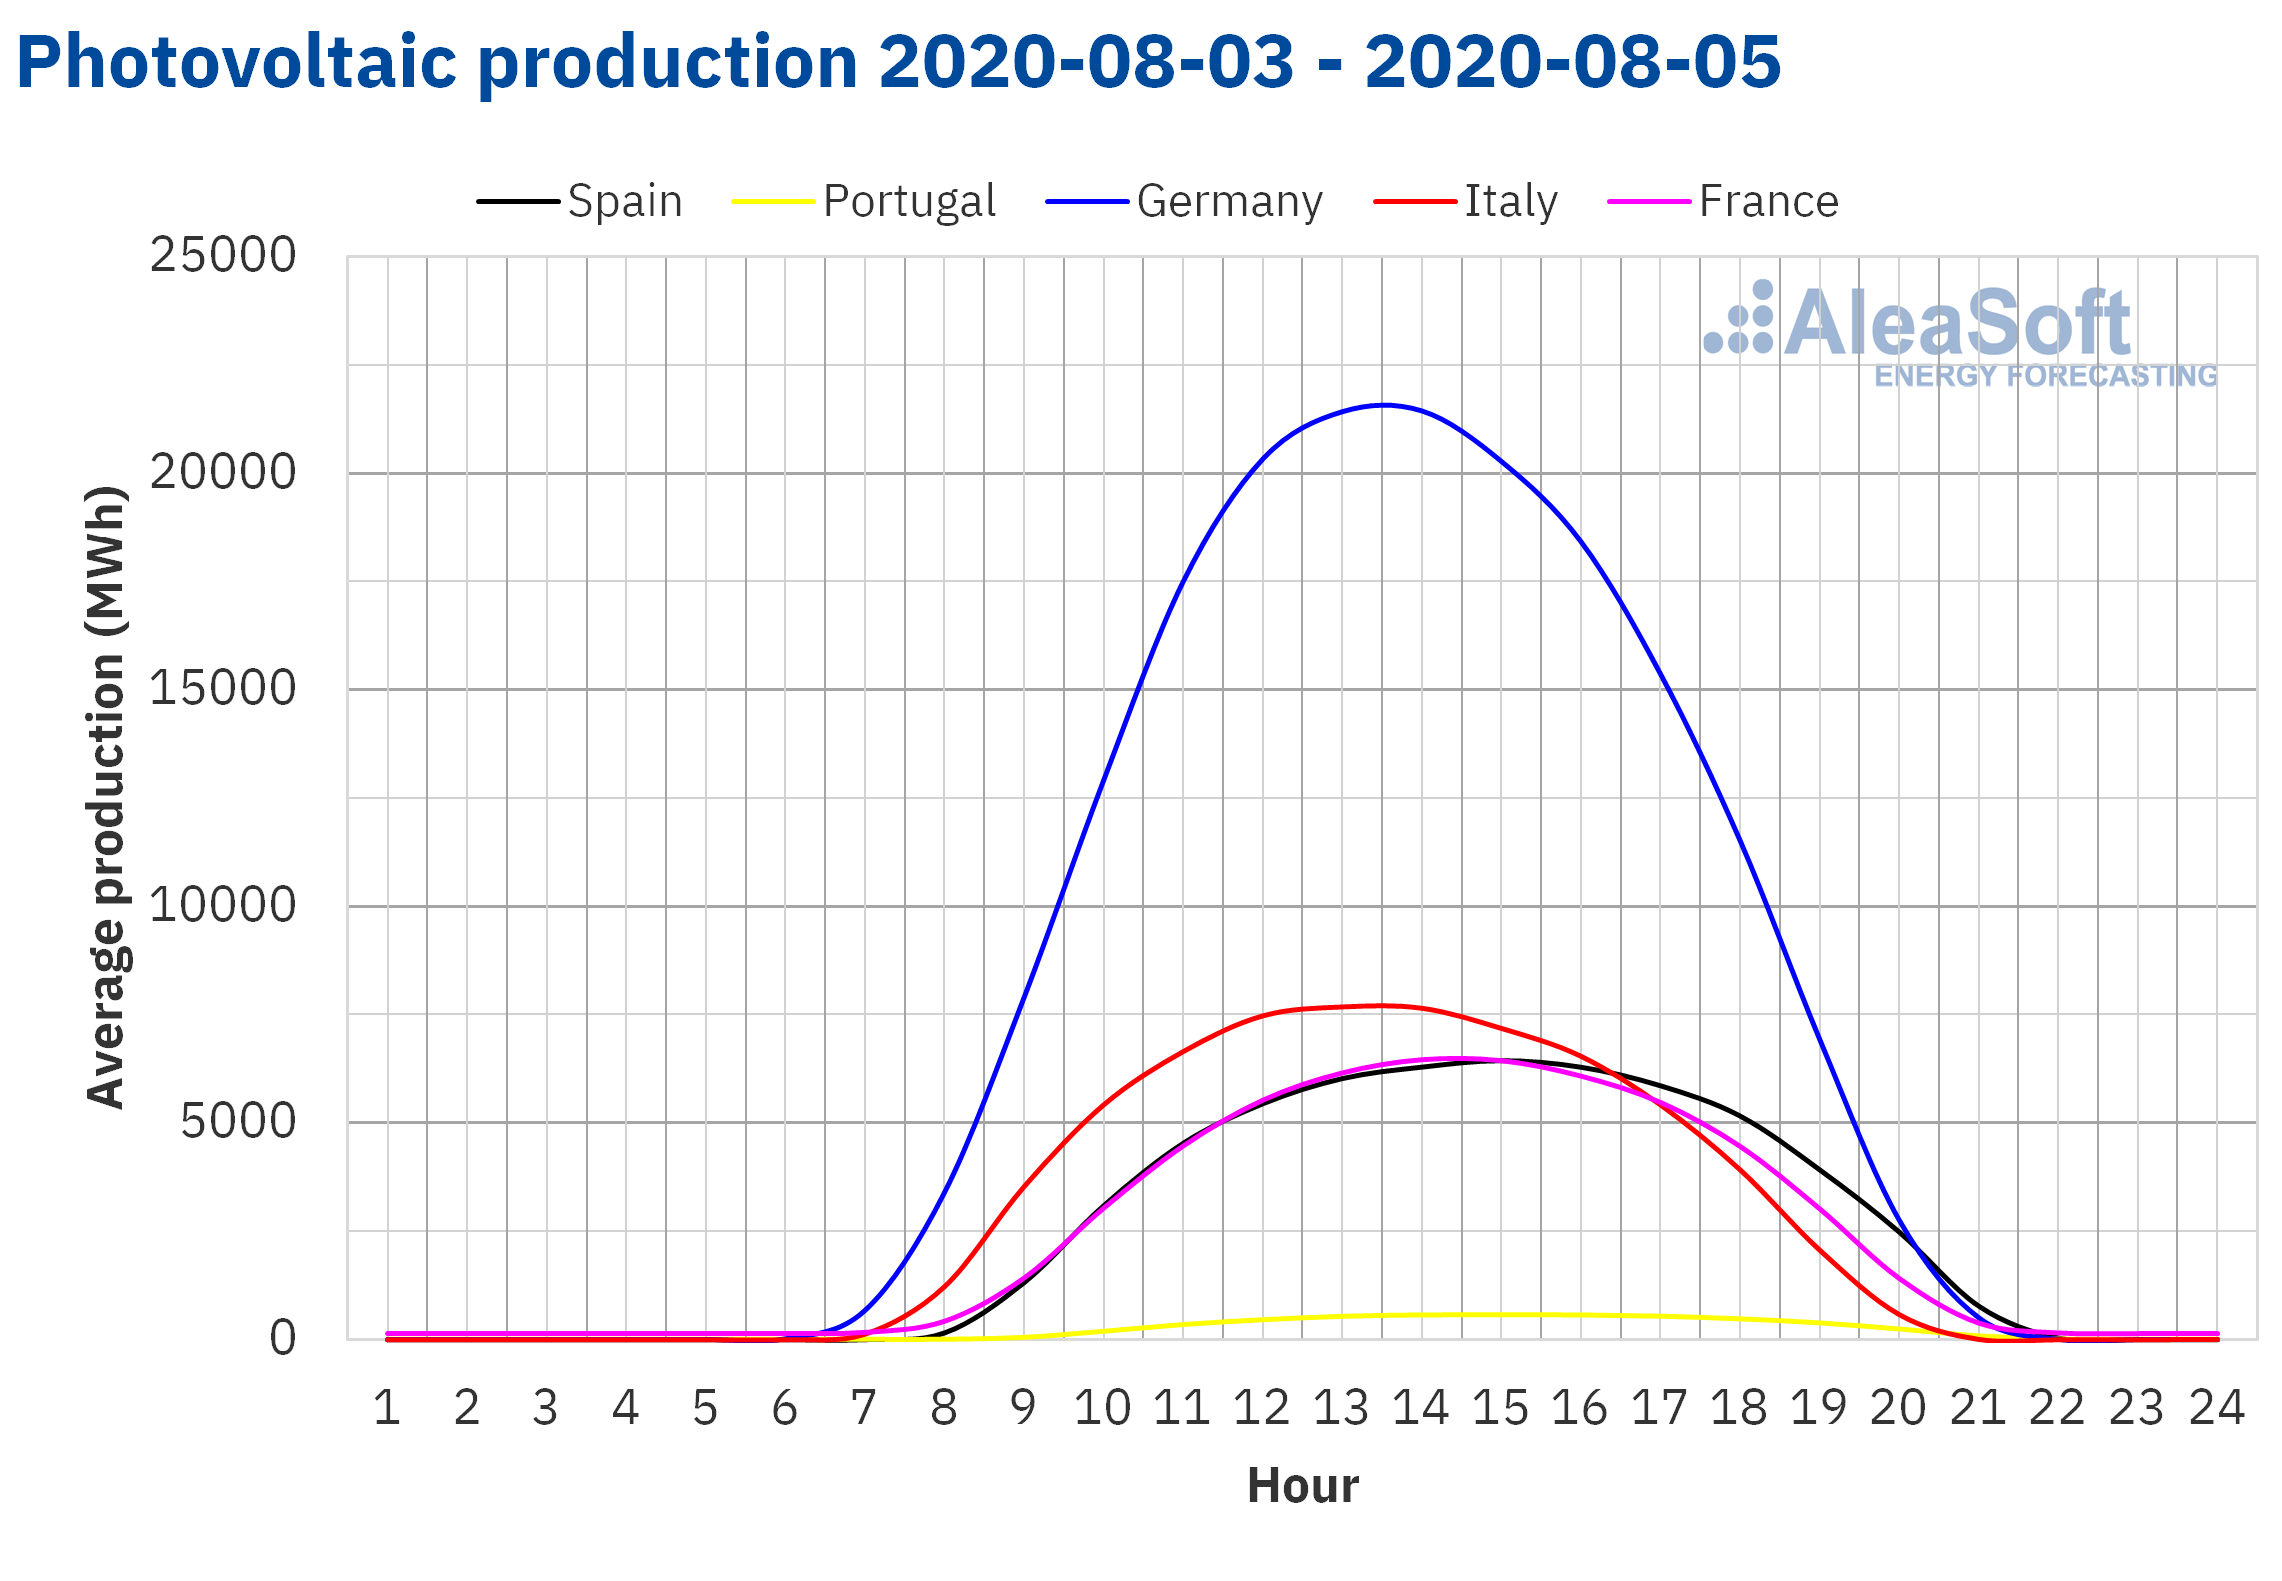 AleaSoft - Solar photovoltaic production profile of Europe